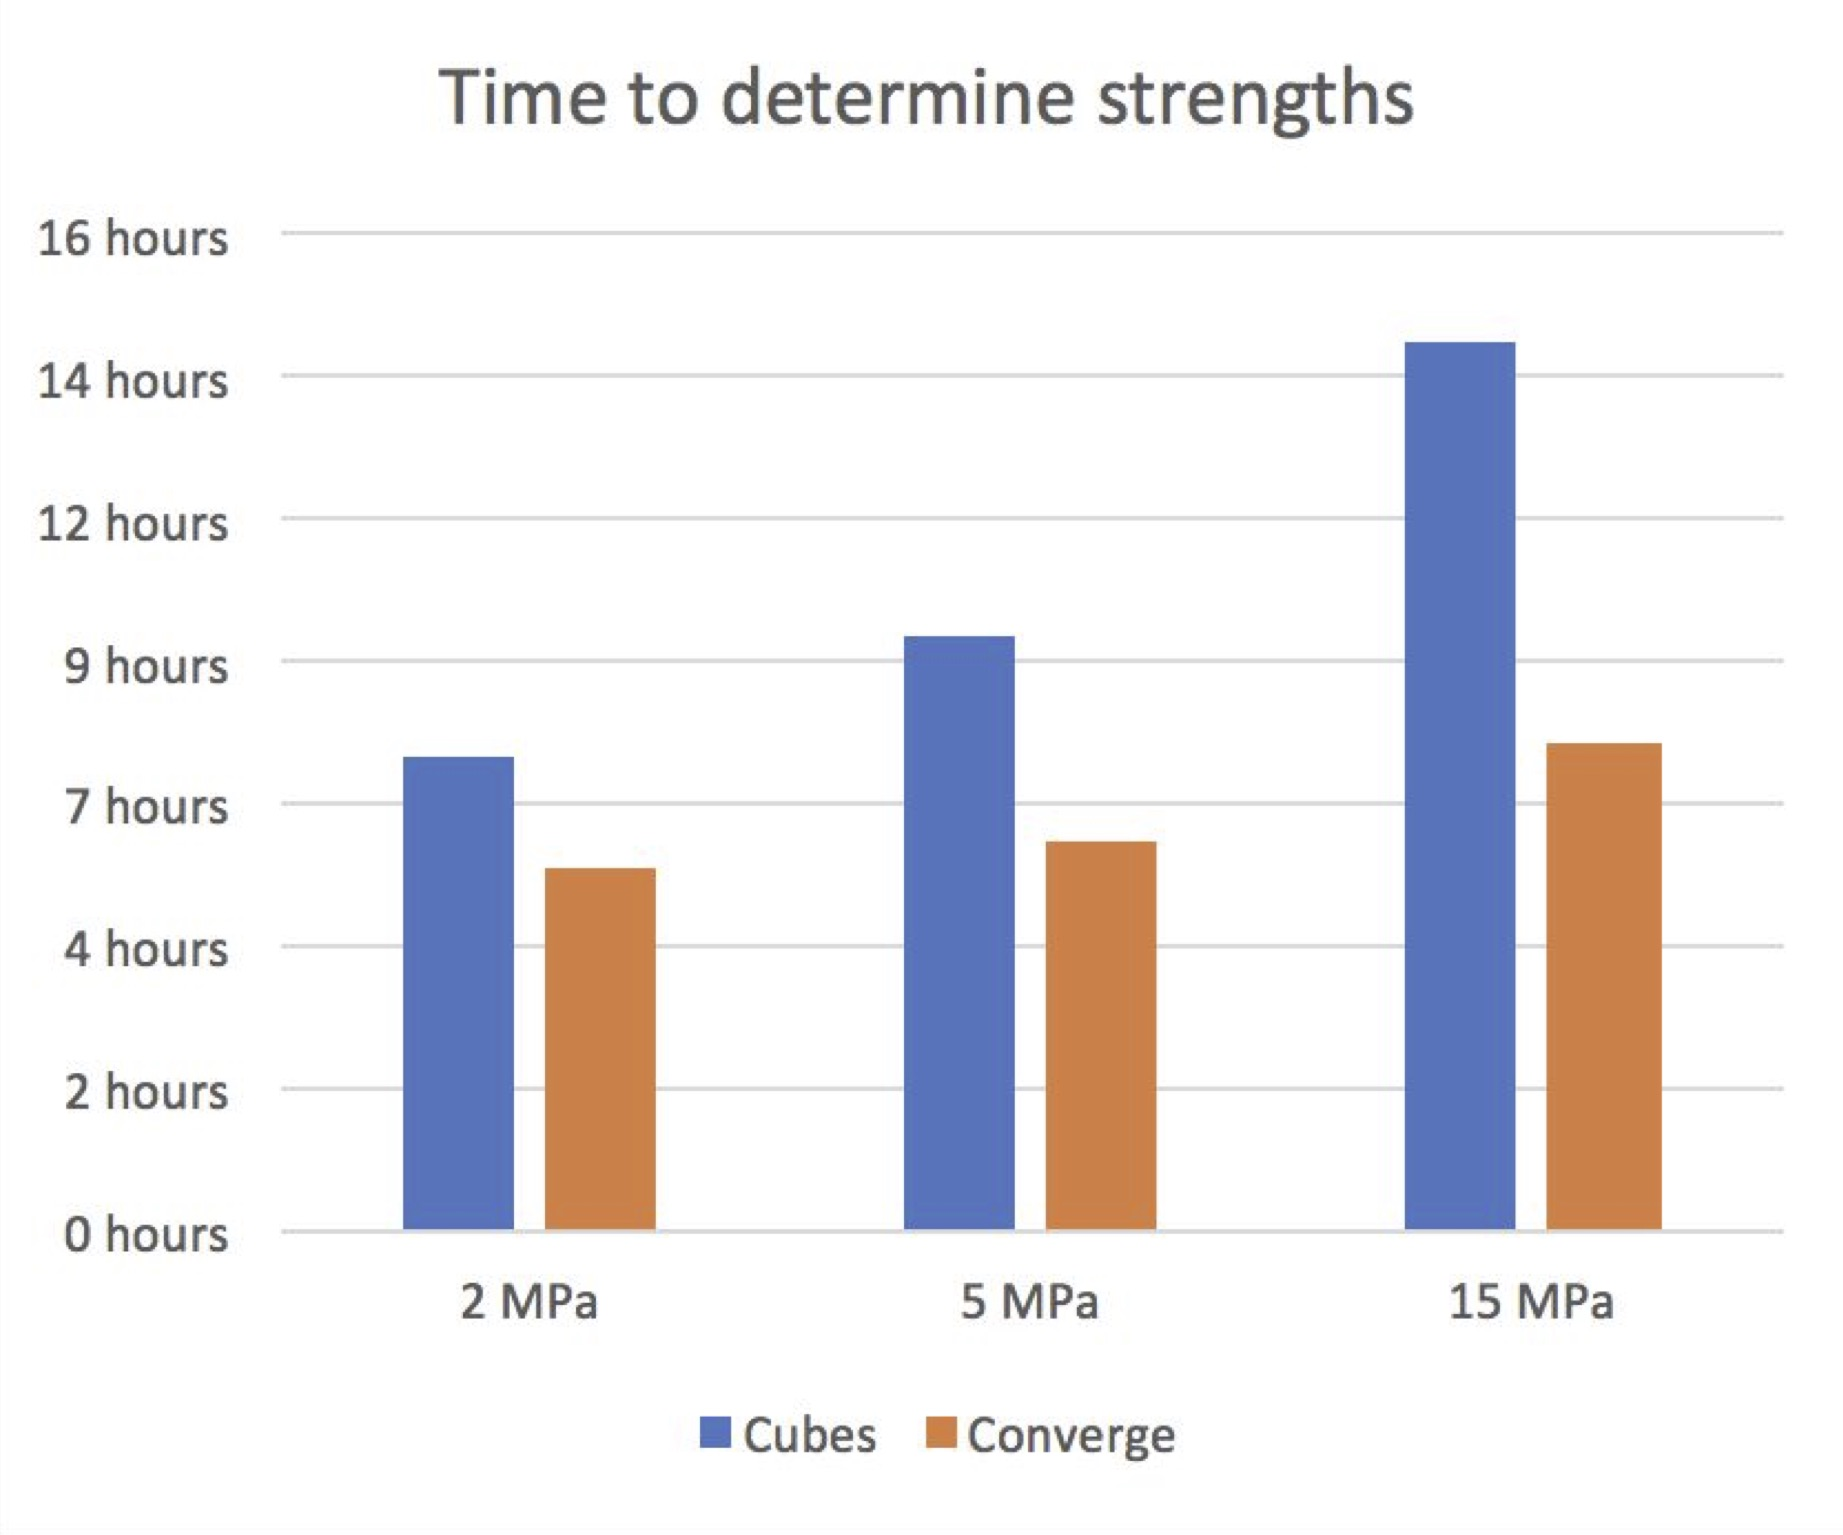 Time to determine strengths graph